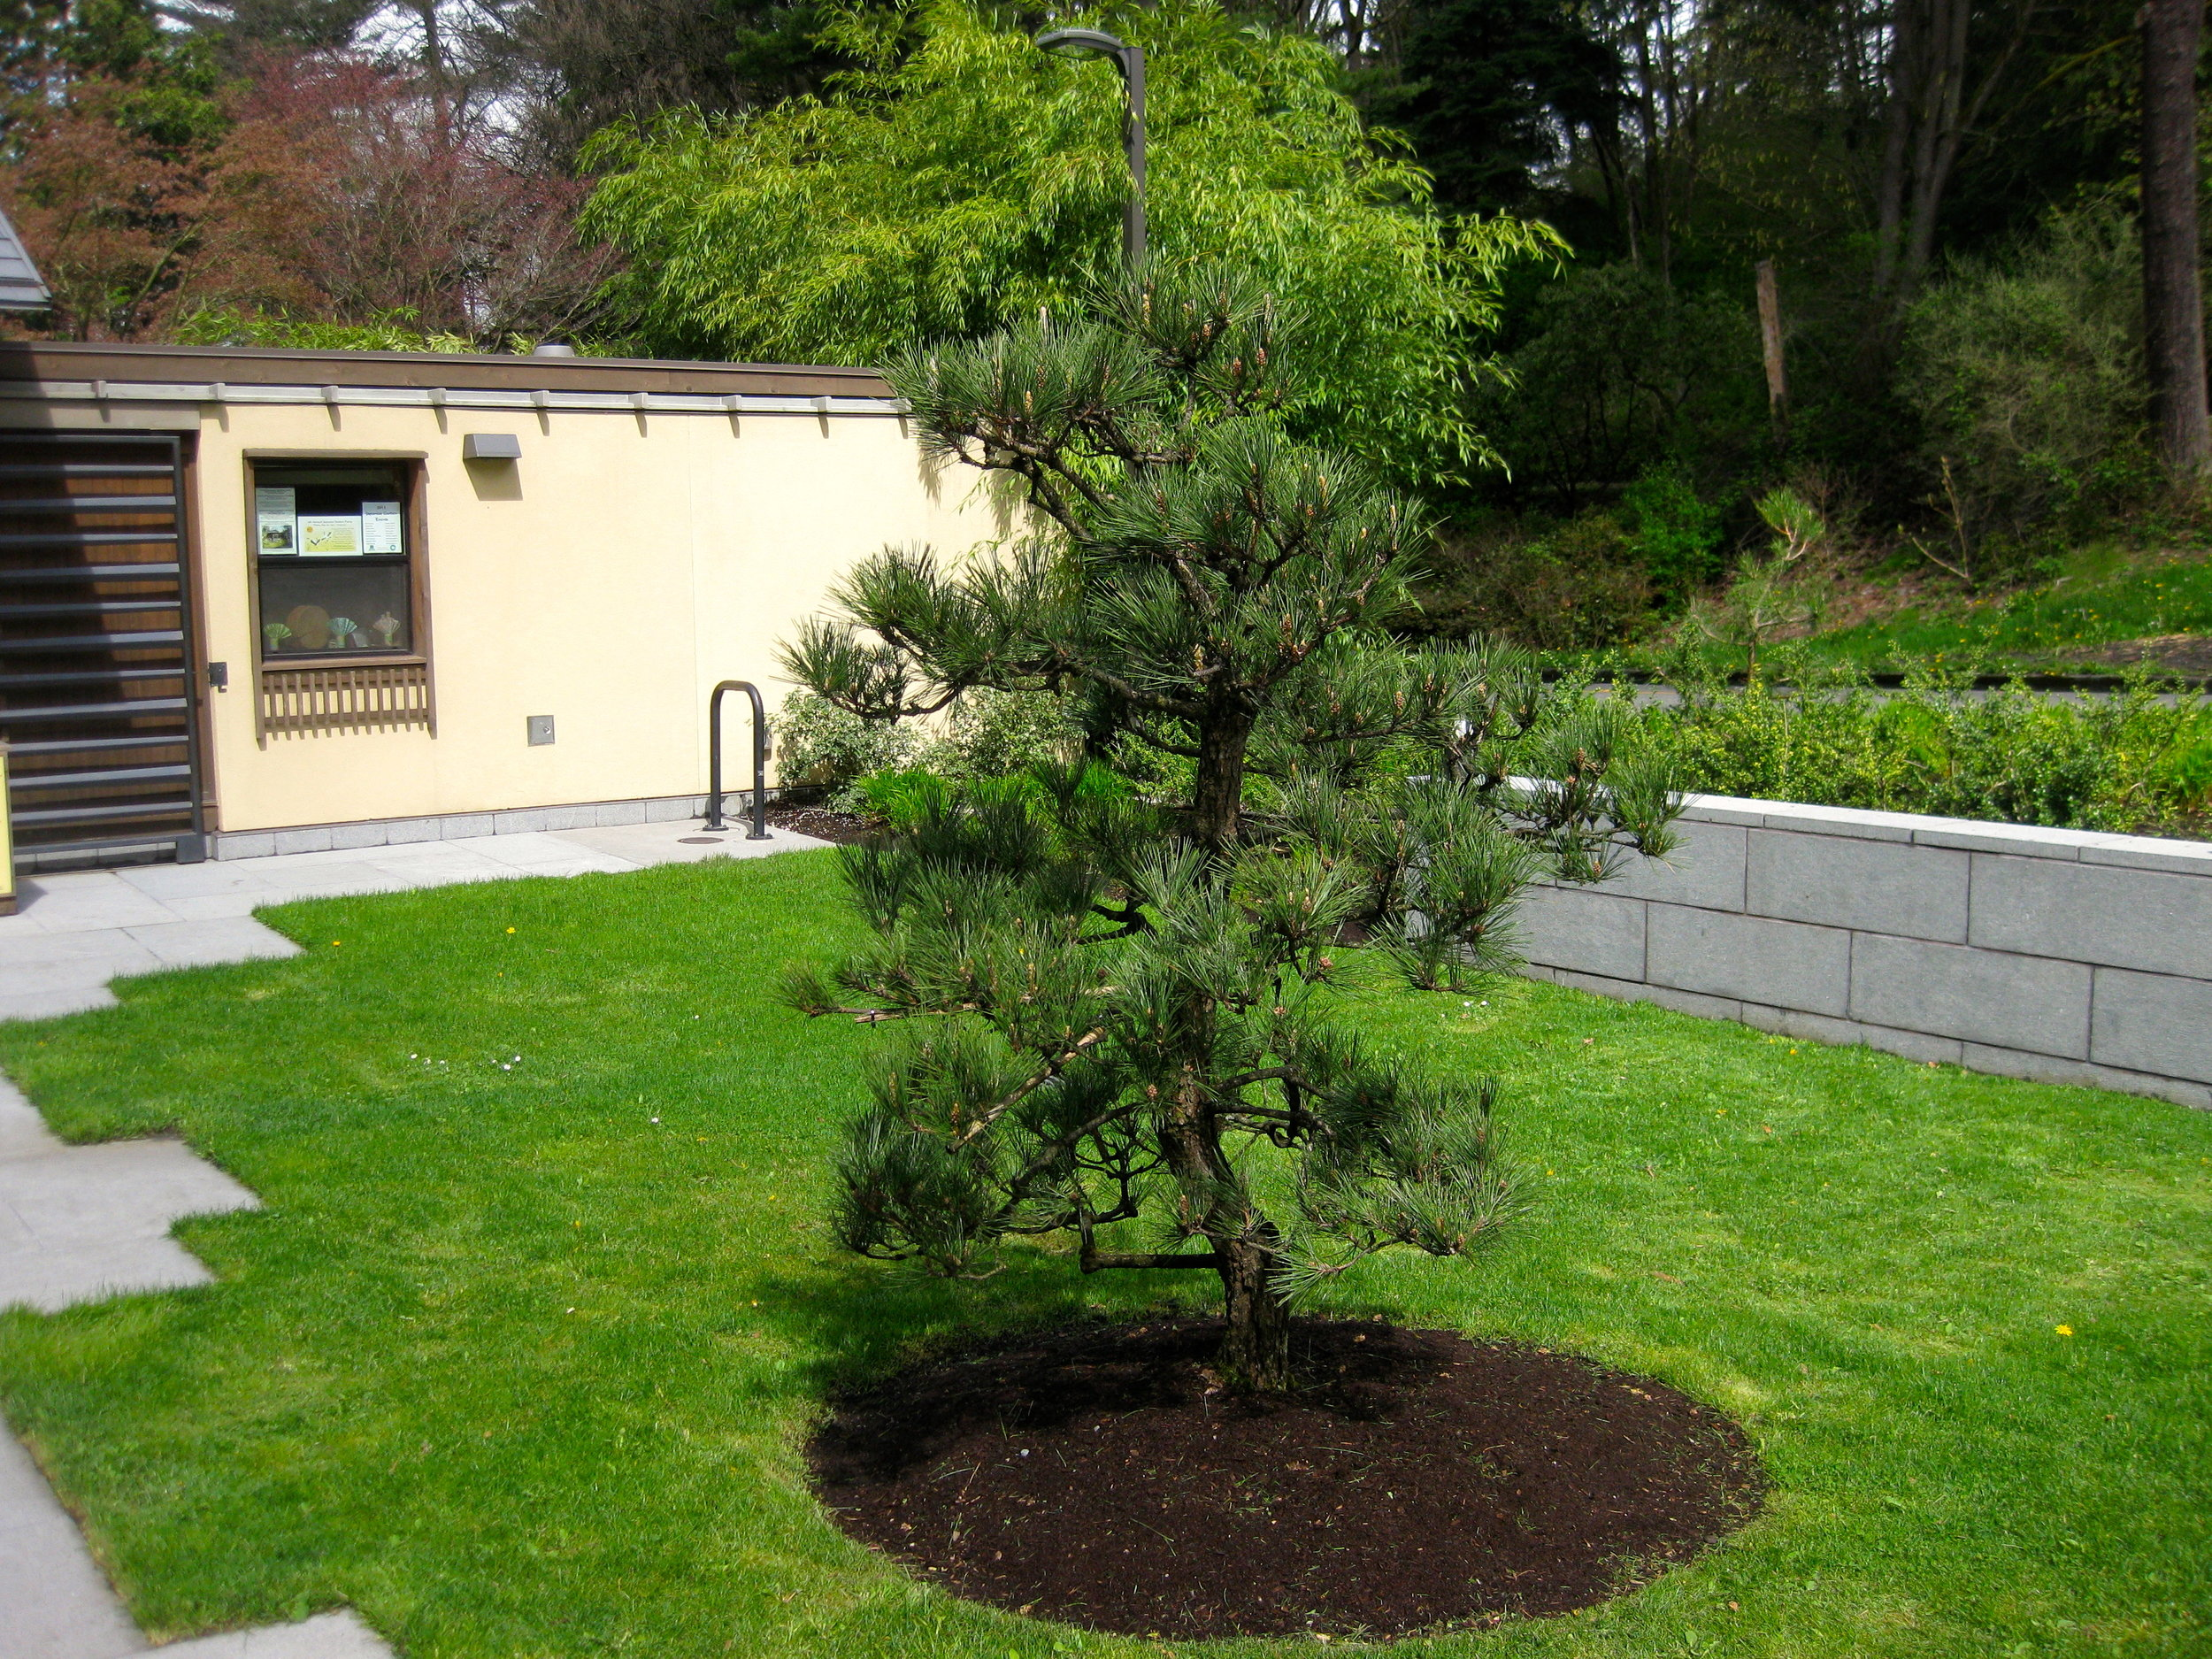 Japanese black pine in the Seattle Japanese Garden's entry courtyard. (photo: Aleks Monk)